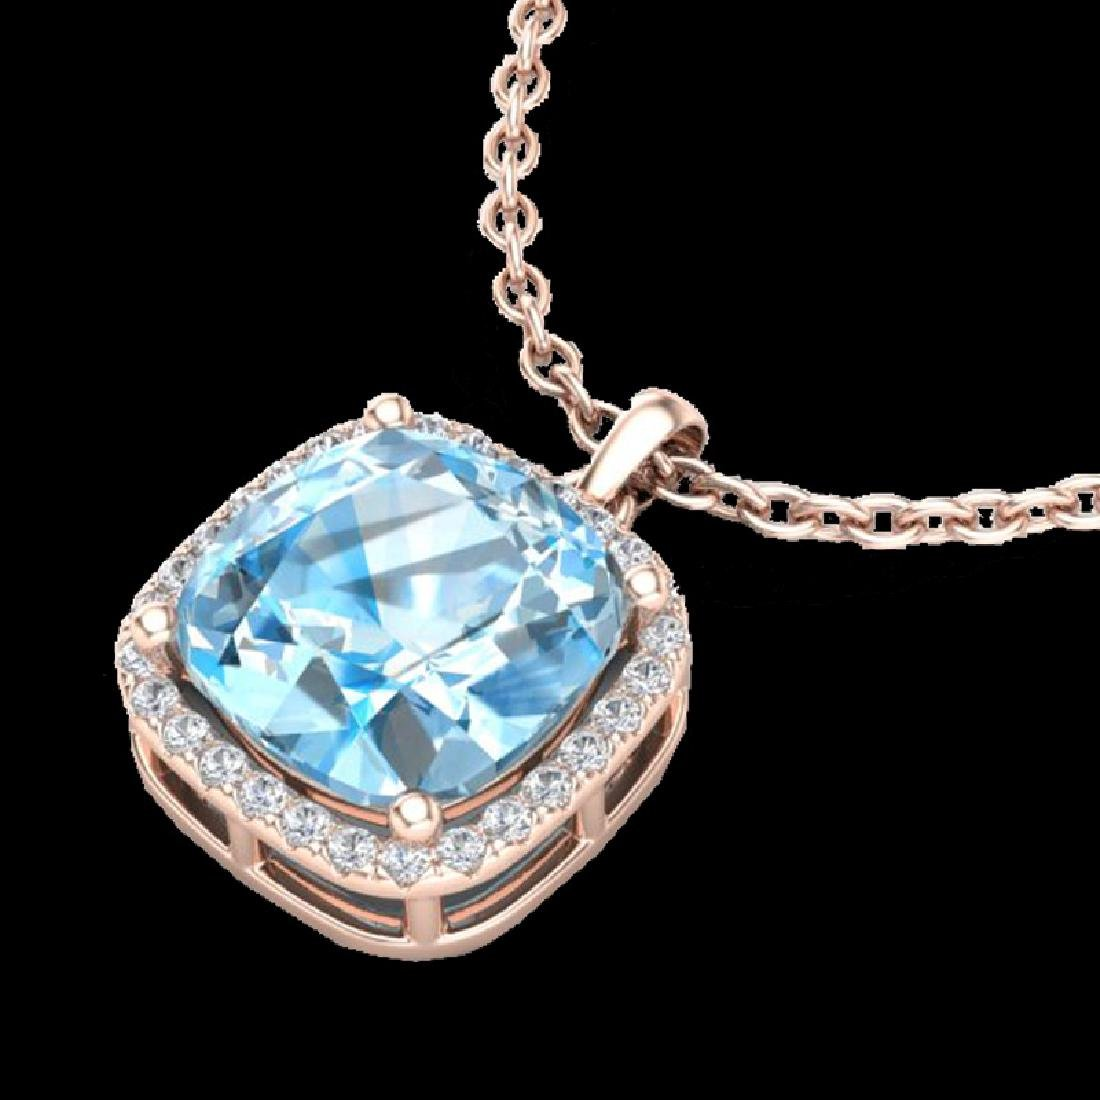 6 CTW Sky Blue Topaz & Pave Halo VS/SI Diamond Necklace